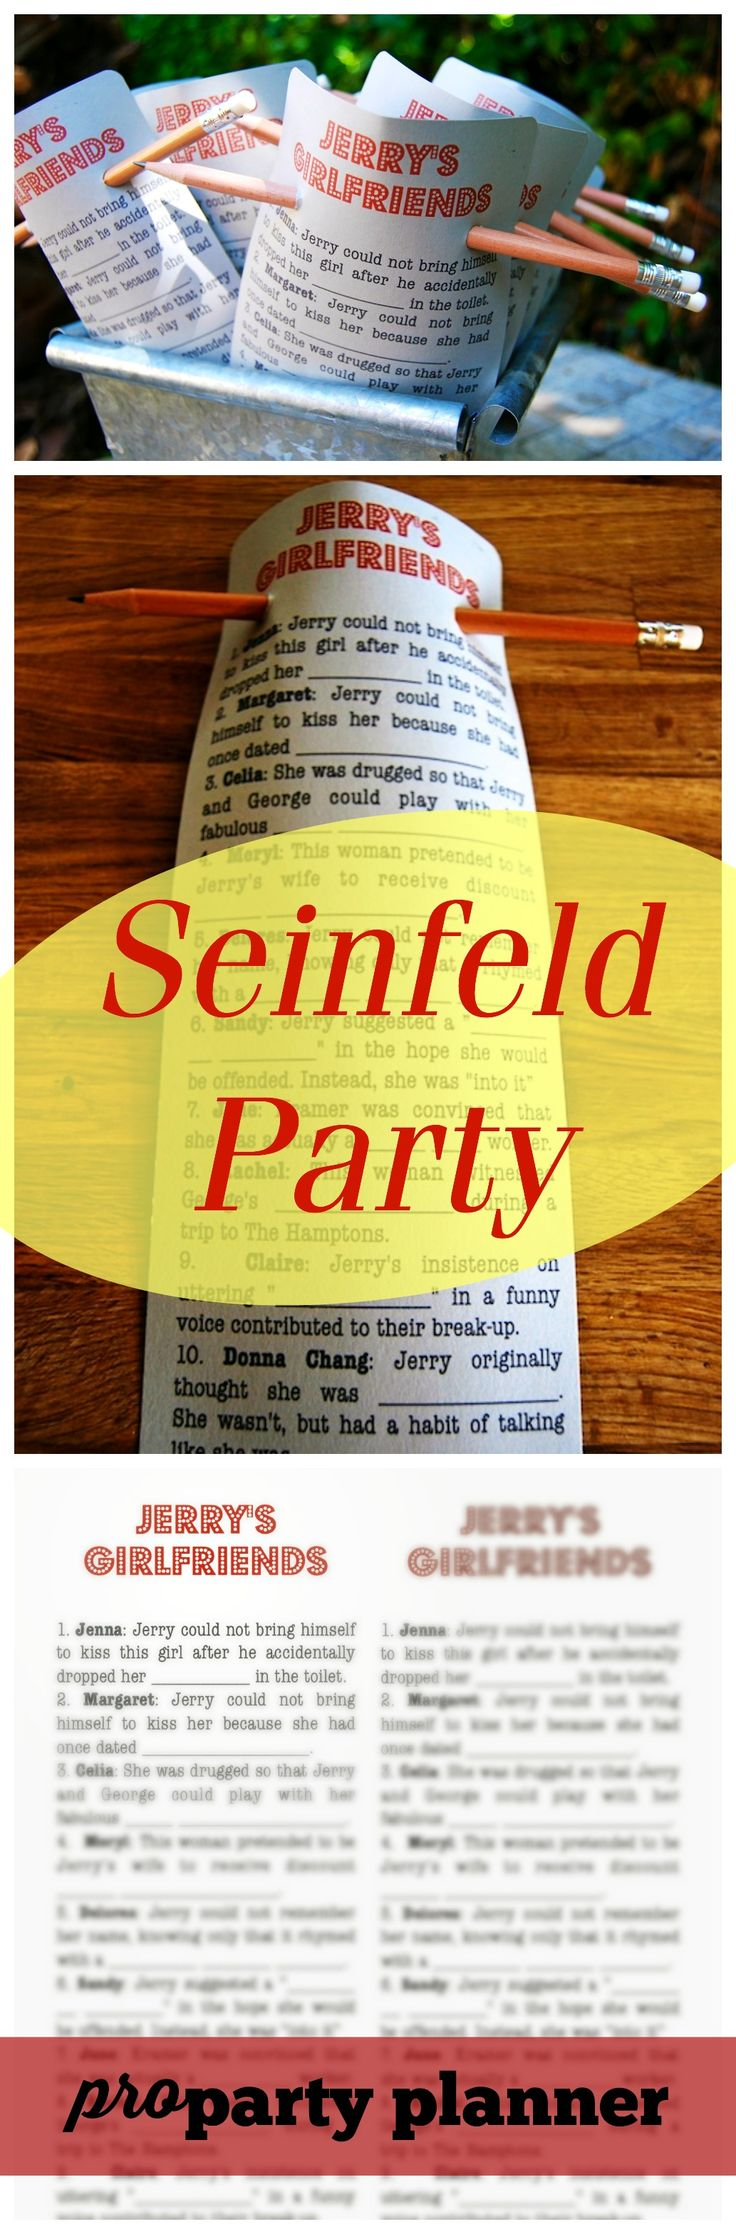 Seinfeld Theme Party Printable // www.propartyplanner.com/seinfeld-theme-party / Pro Party Planner /